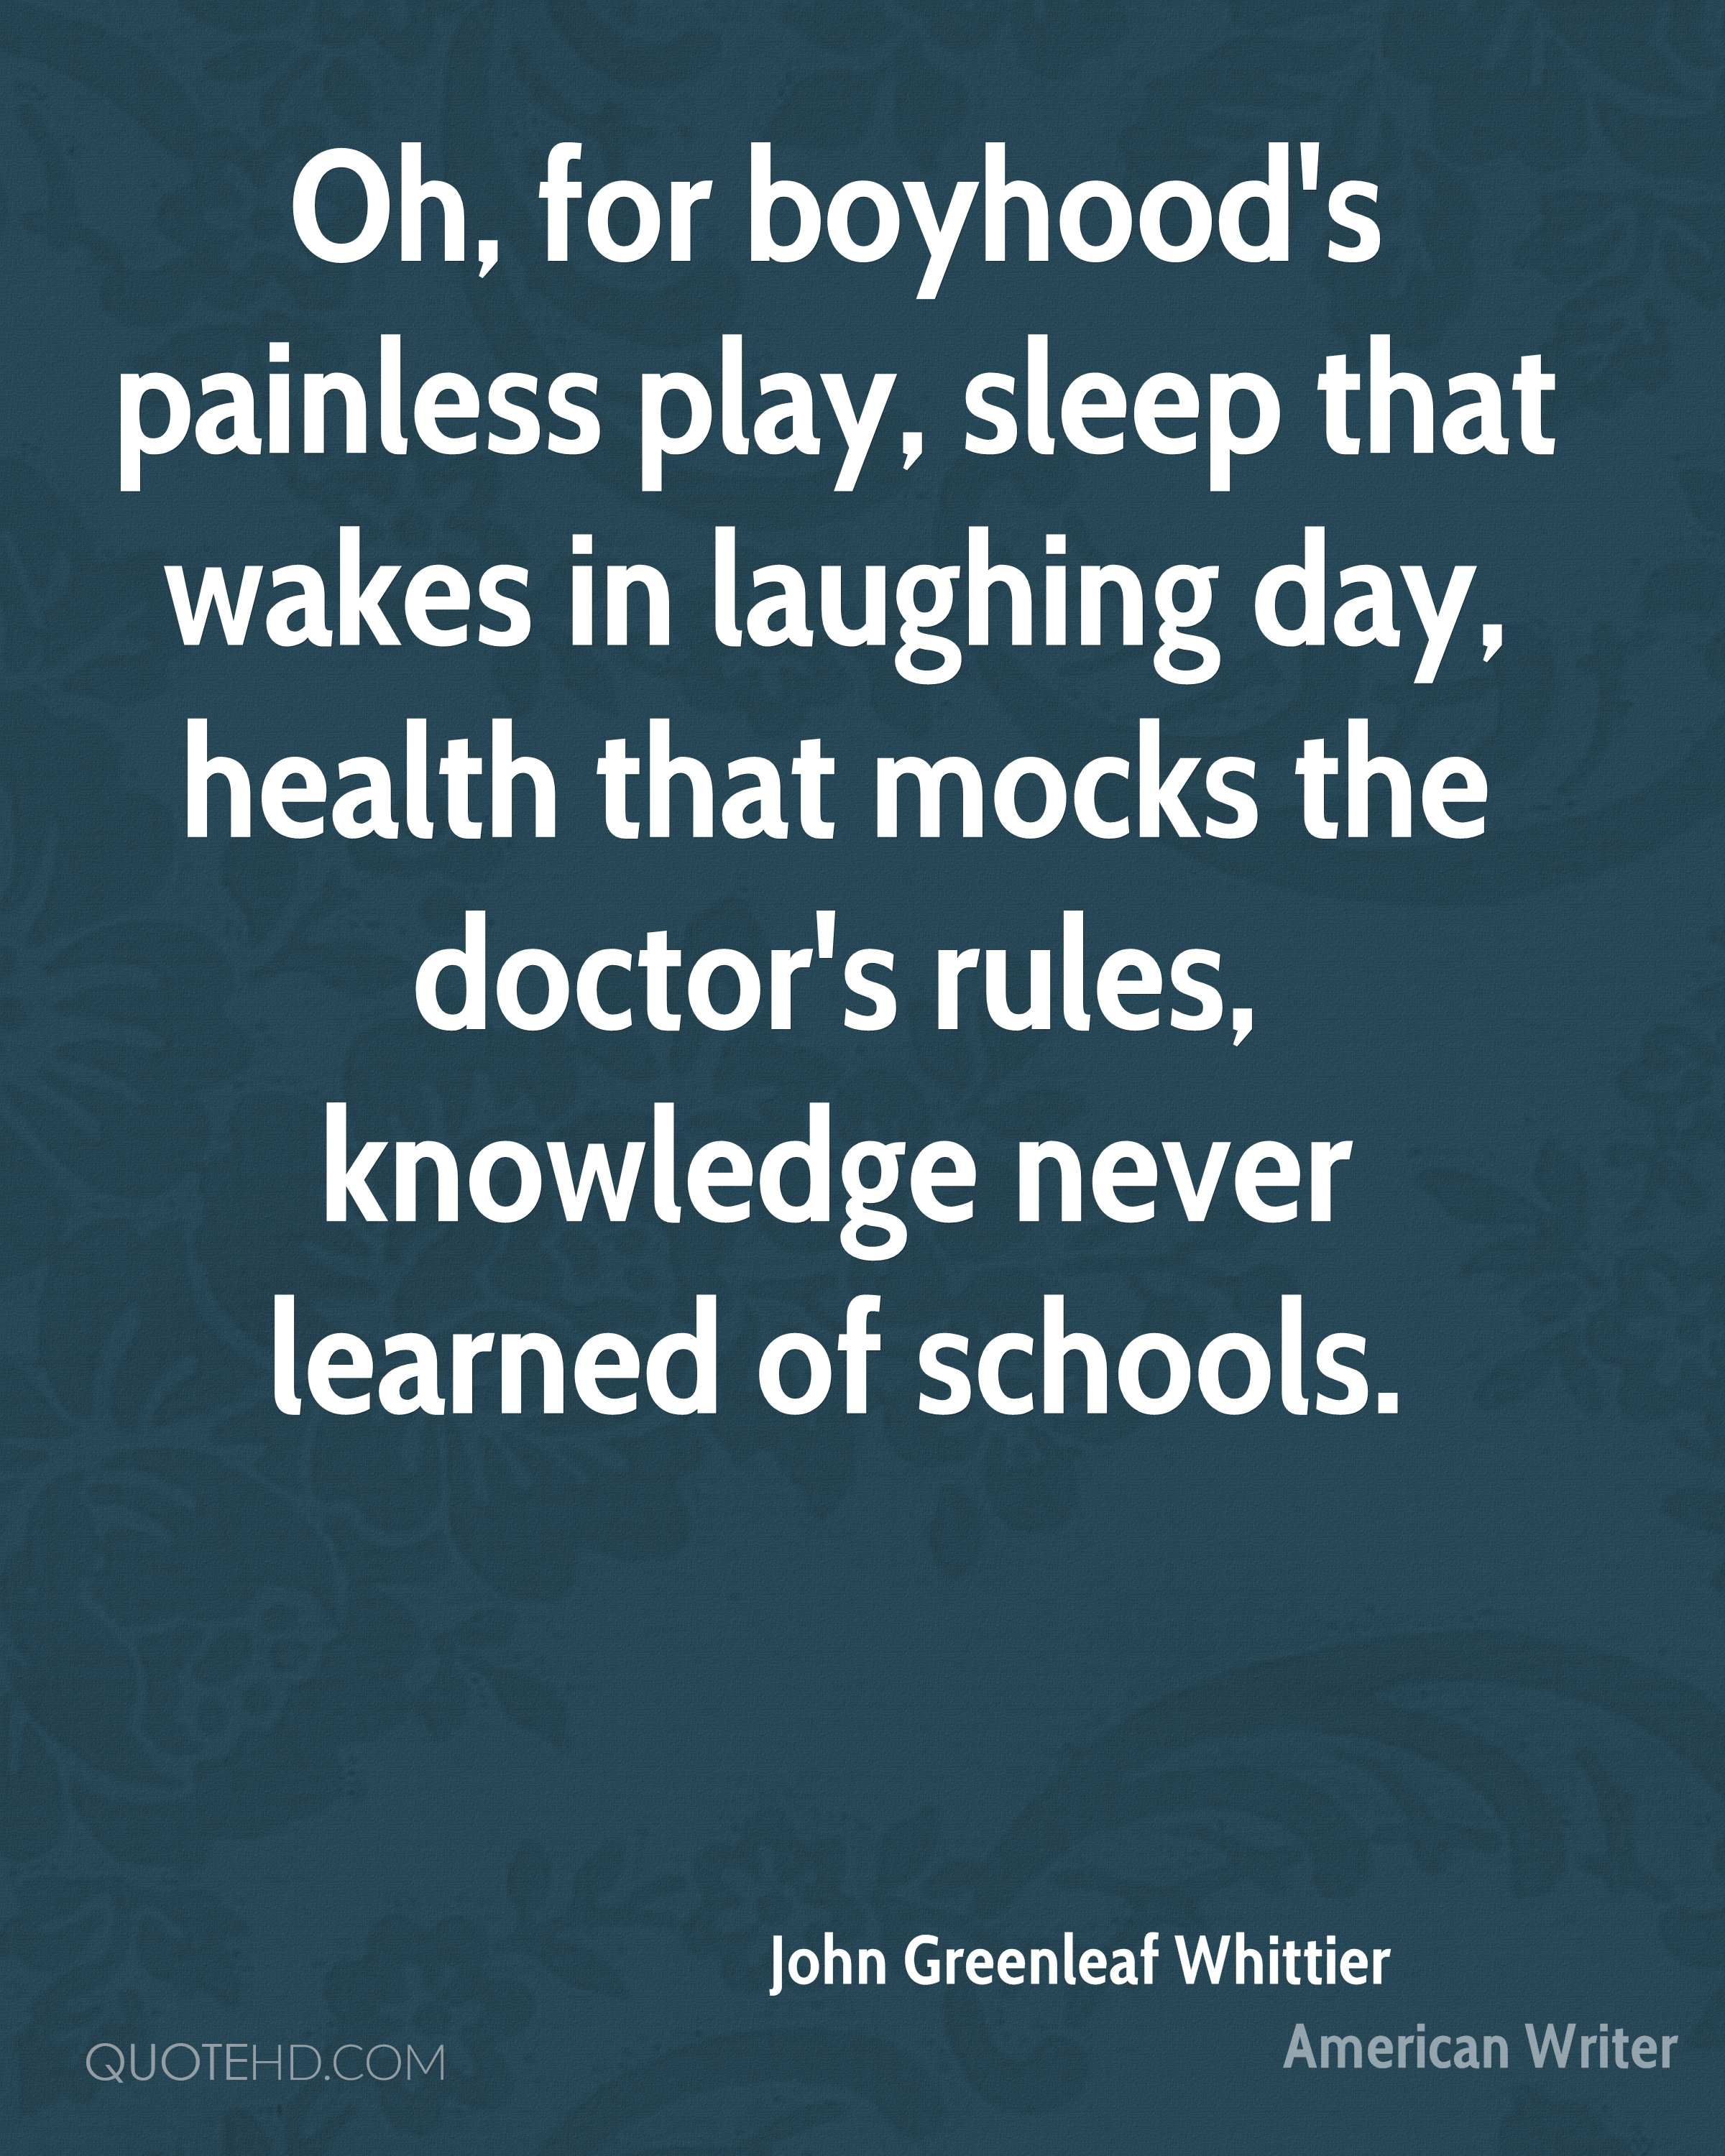 Oh, for boyhood's painless play, sleep that wakes in laughing day, health that mocks the doctor's rules, knowledge never learned of schools.